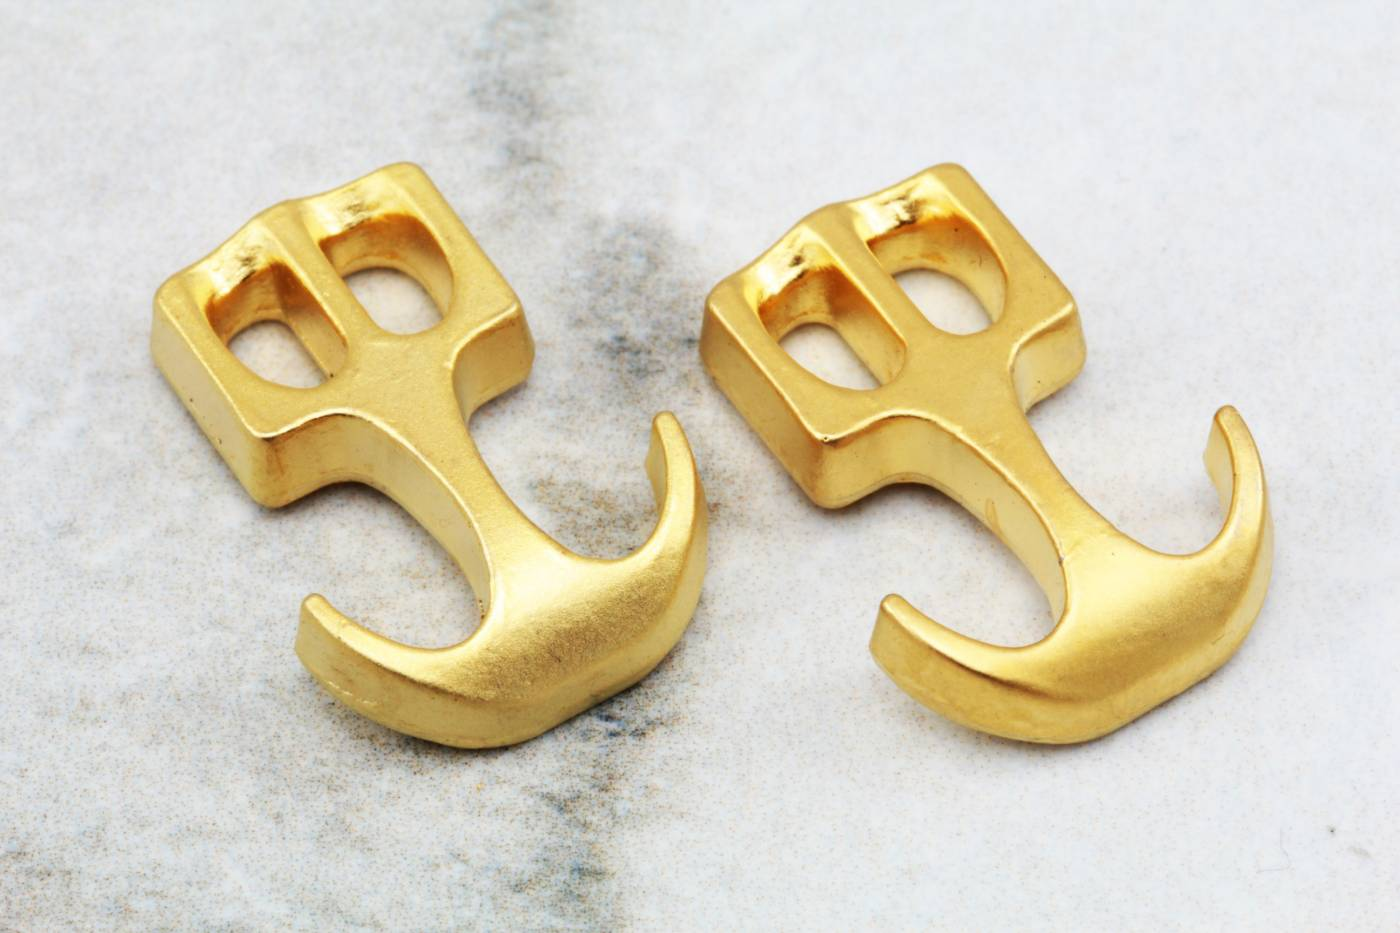 gold-anchor-leather-end-findings.jpg